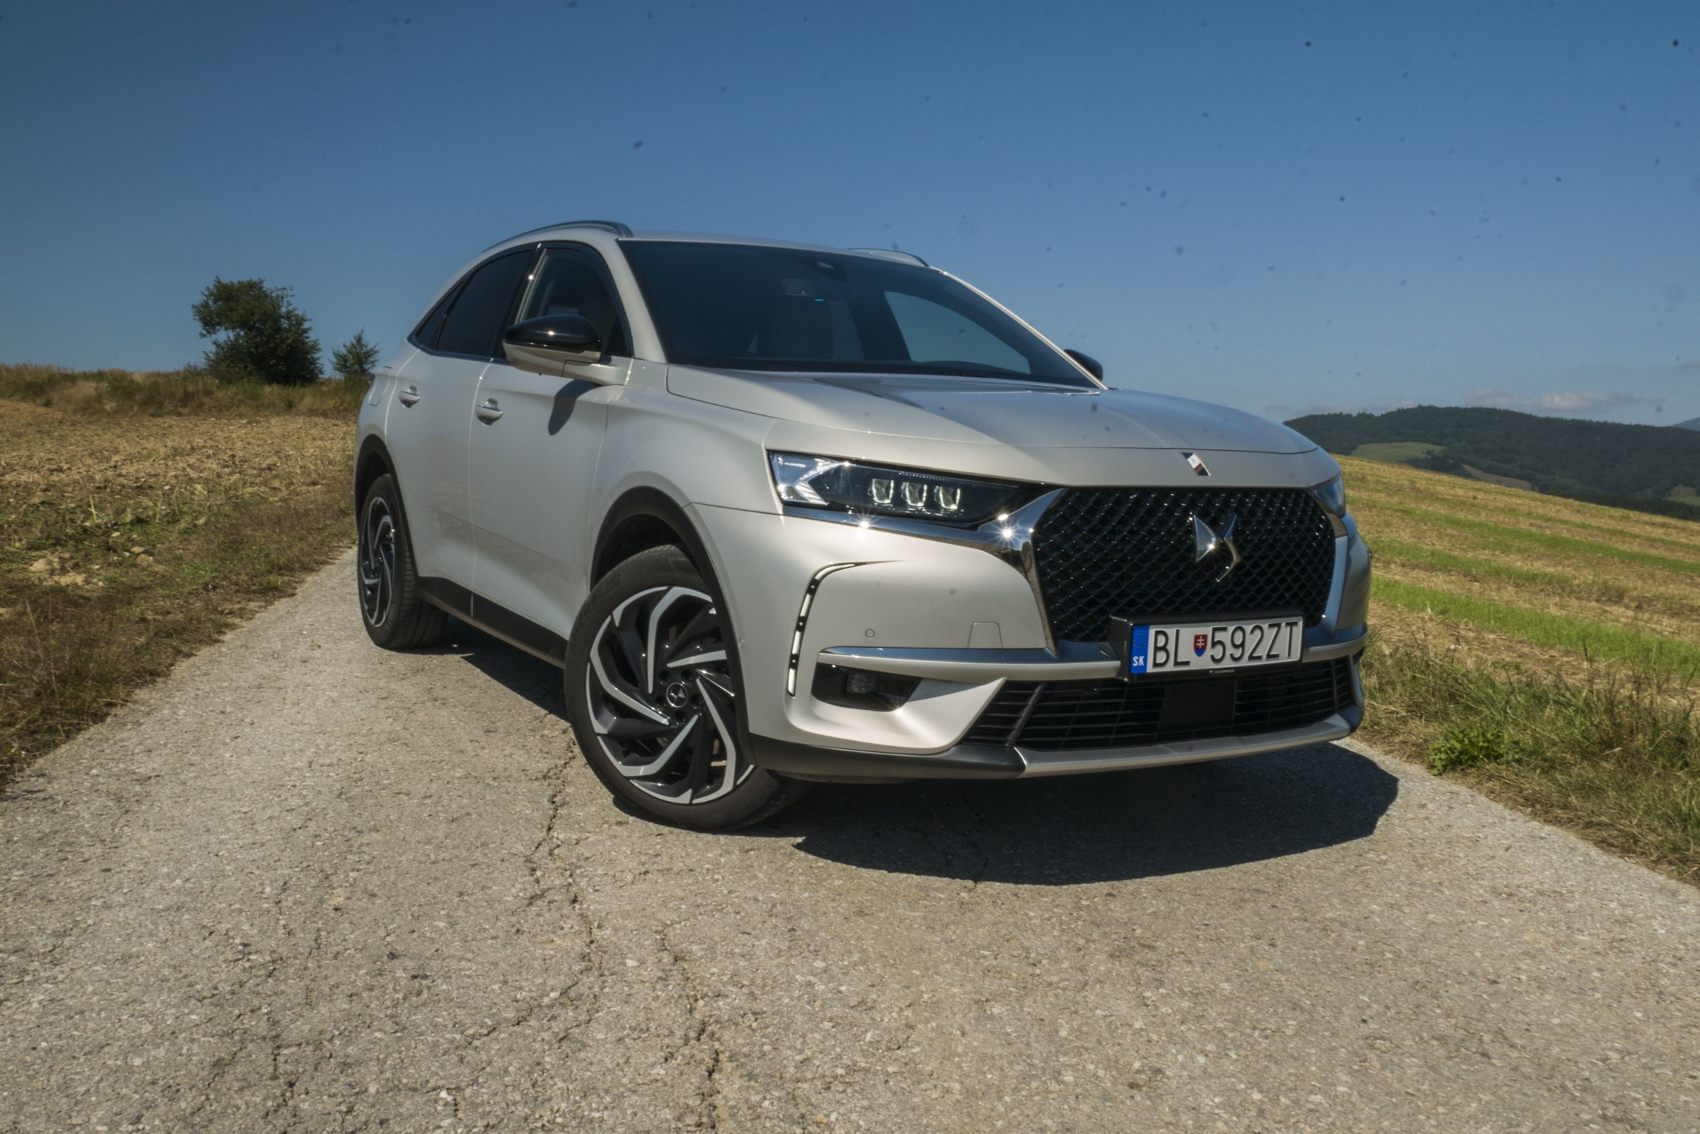 DS 7 Crossback (13)